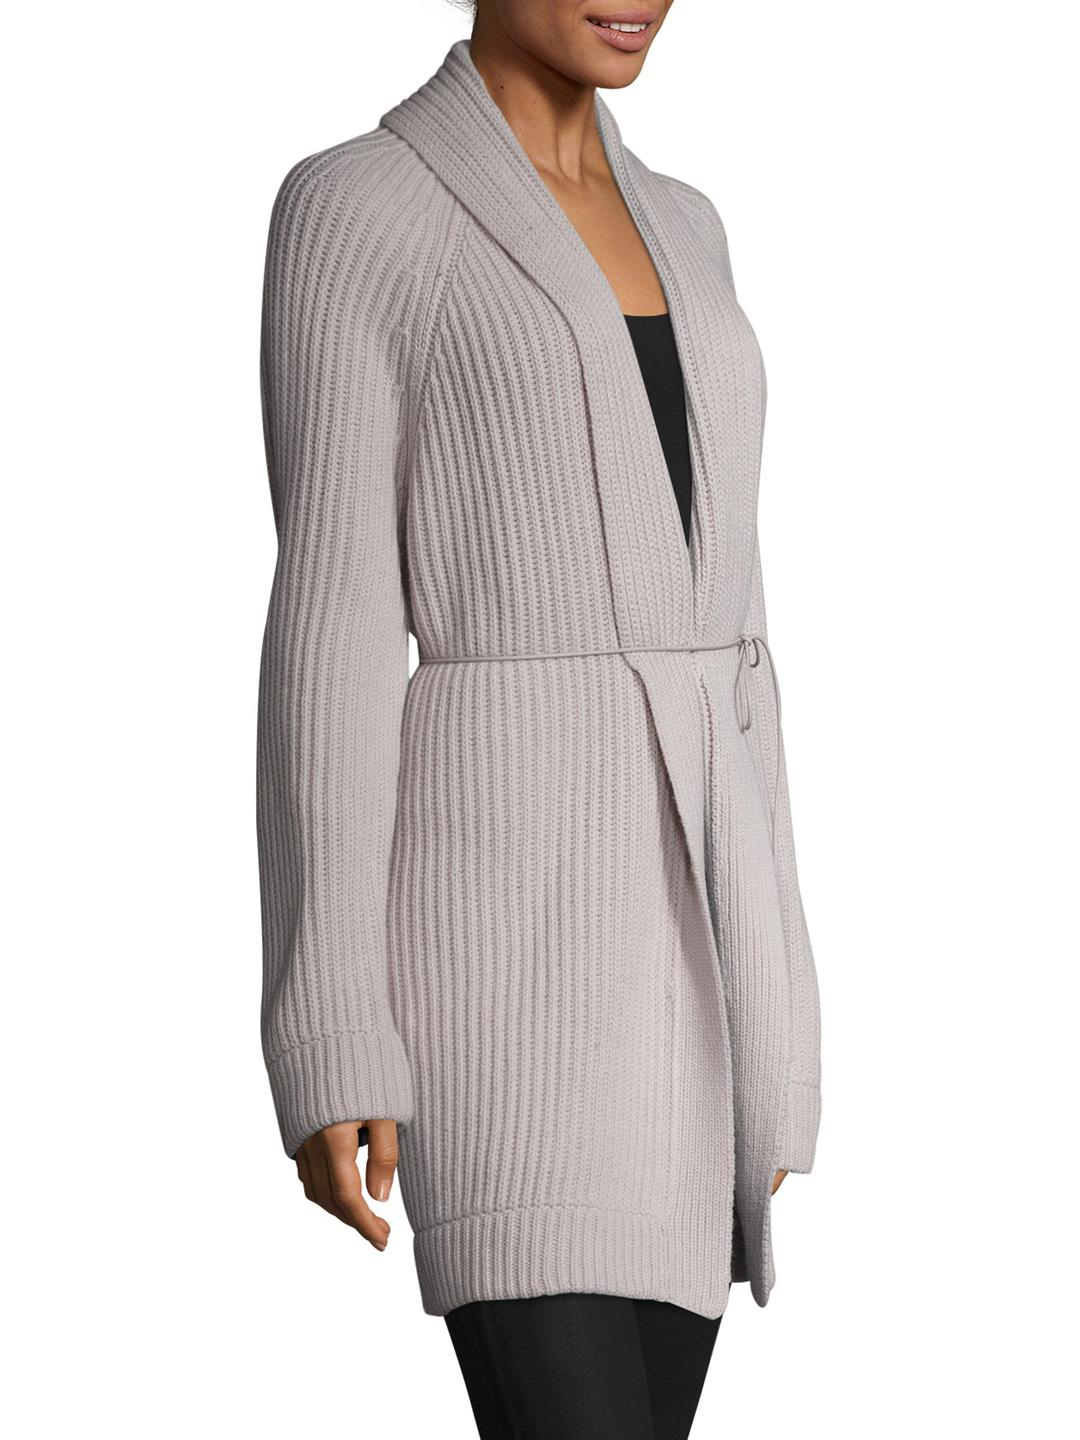 Helmut lang Wool Cashmere Ribbed Self Tie Cardigan in Gray | Lyst